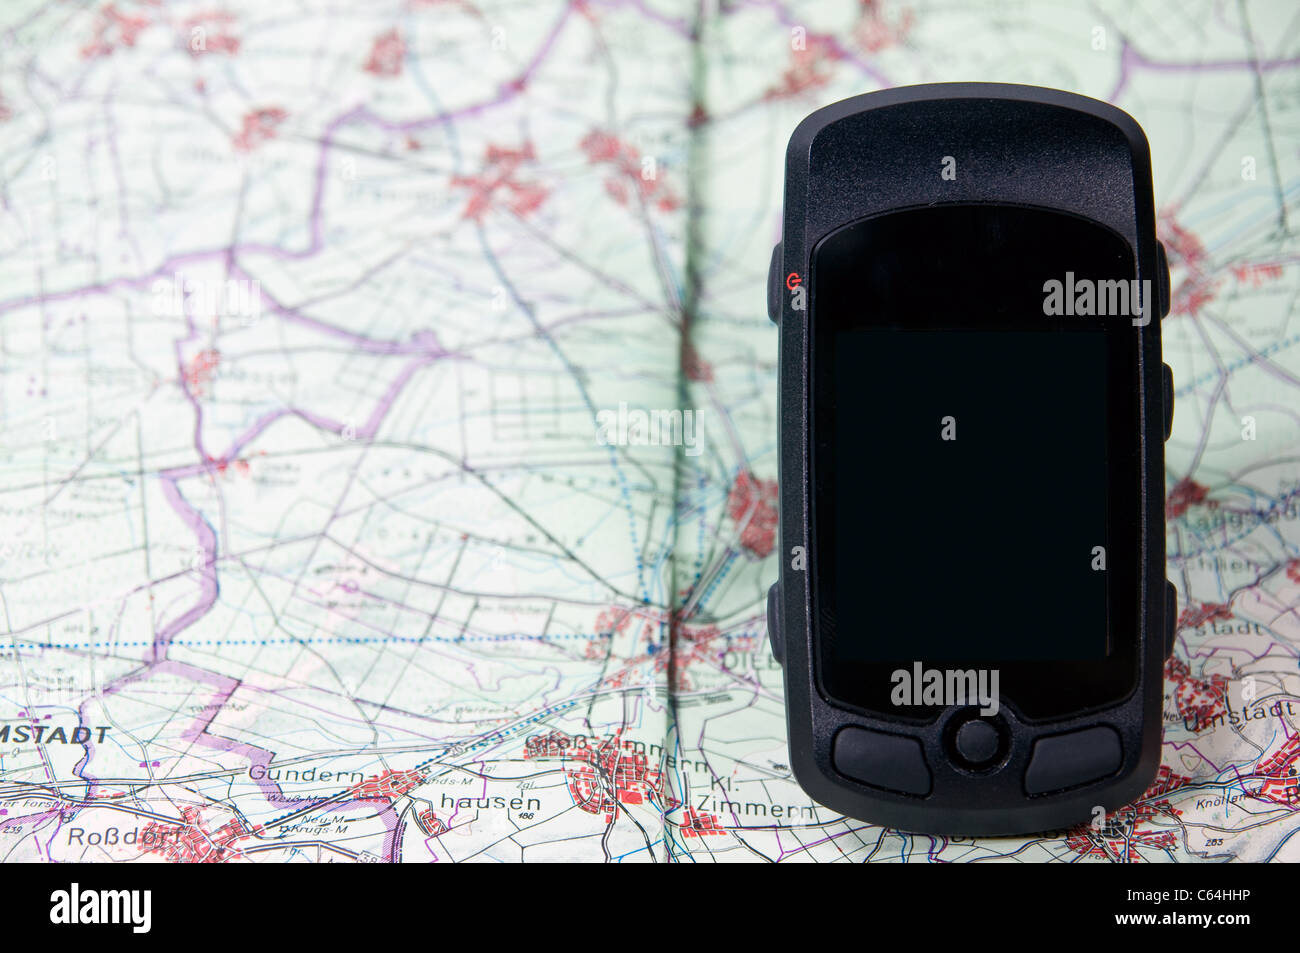 handheld gps on a route map - Stock Image